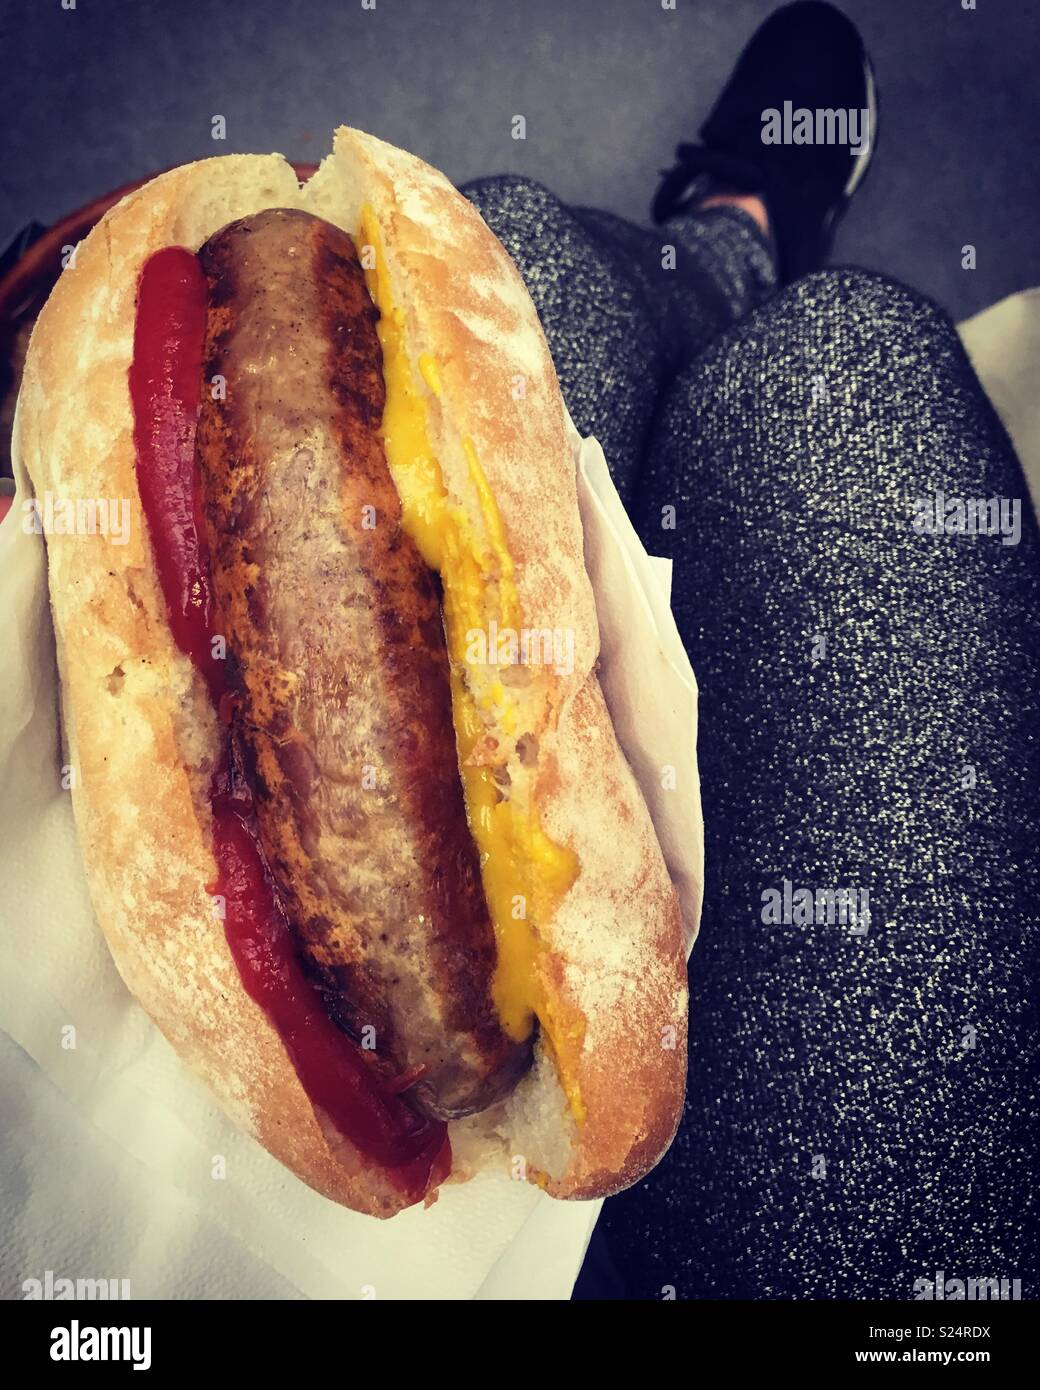 Hot dog, all the condiments and sparkly leggings - Stock Image